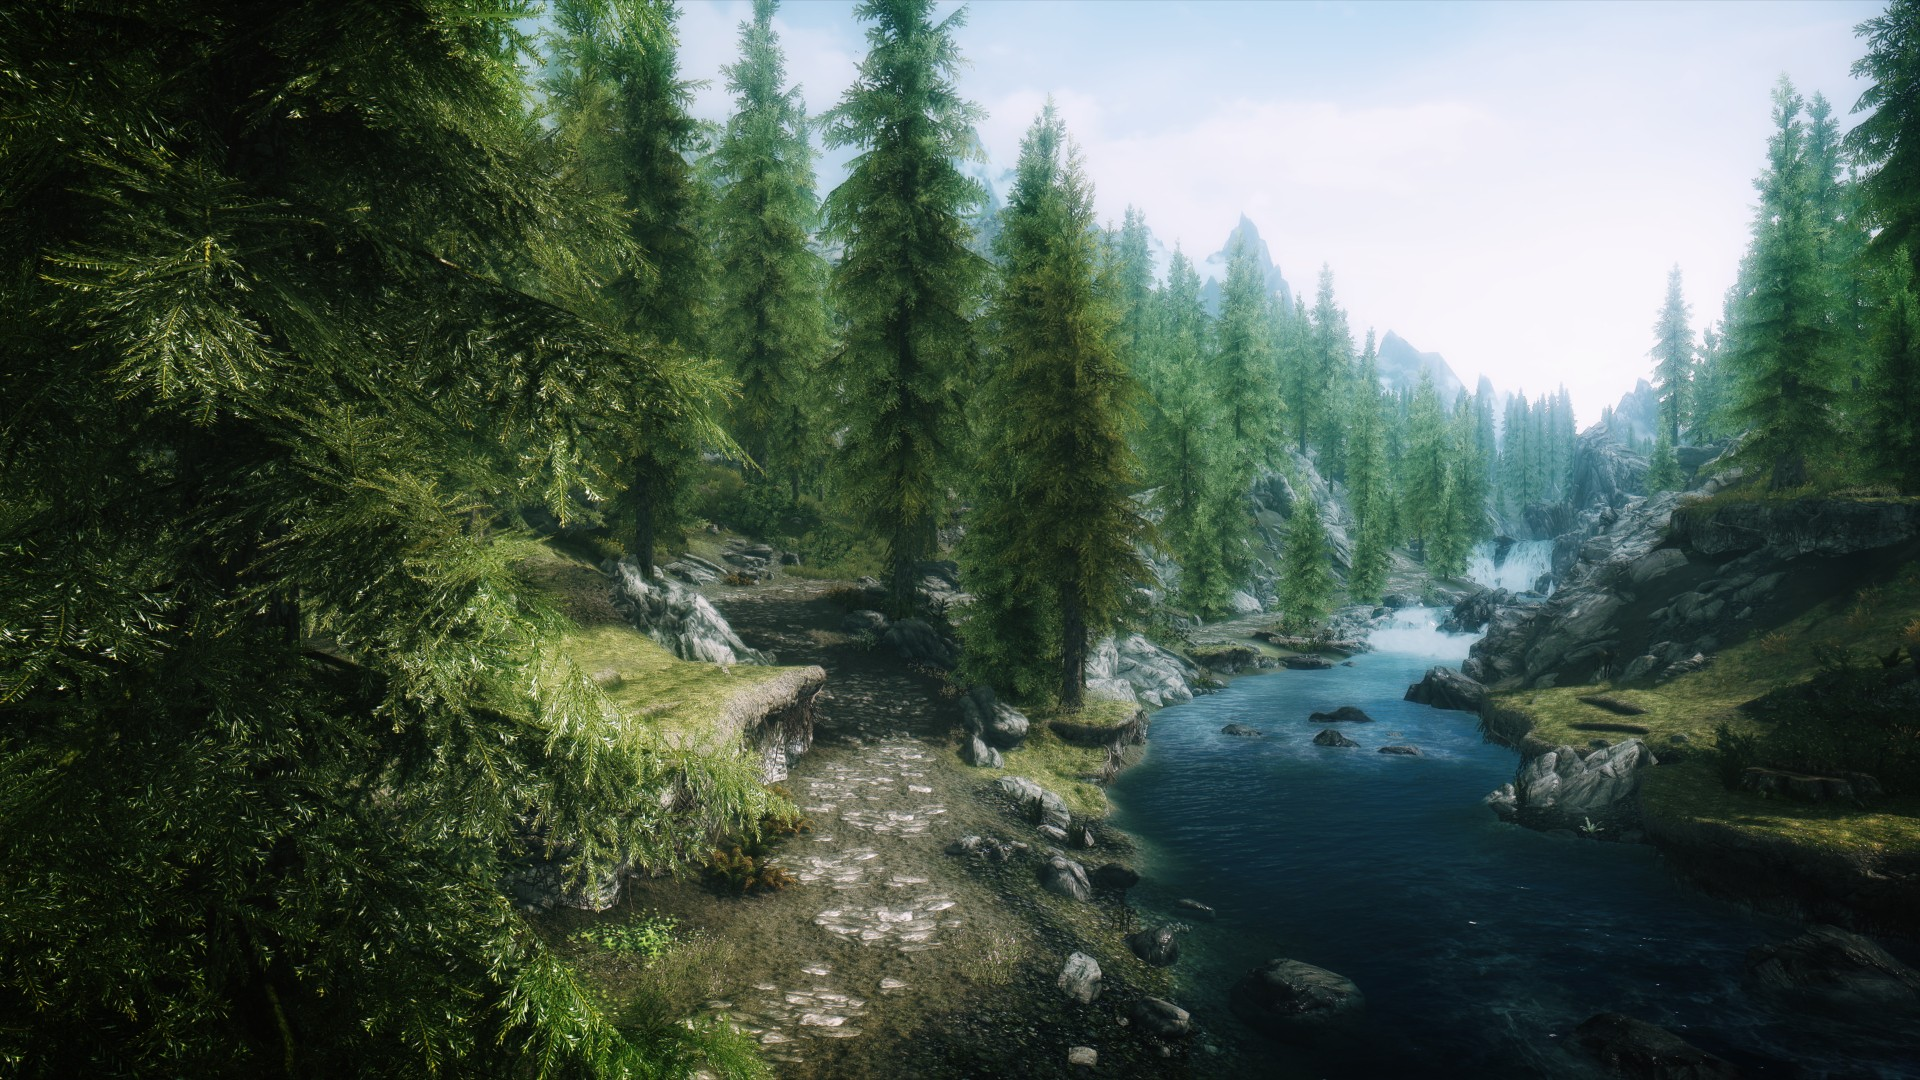 skyrim background A3